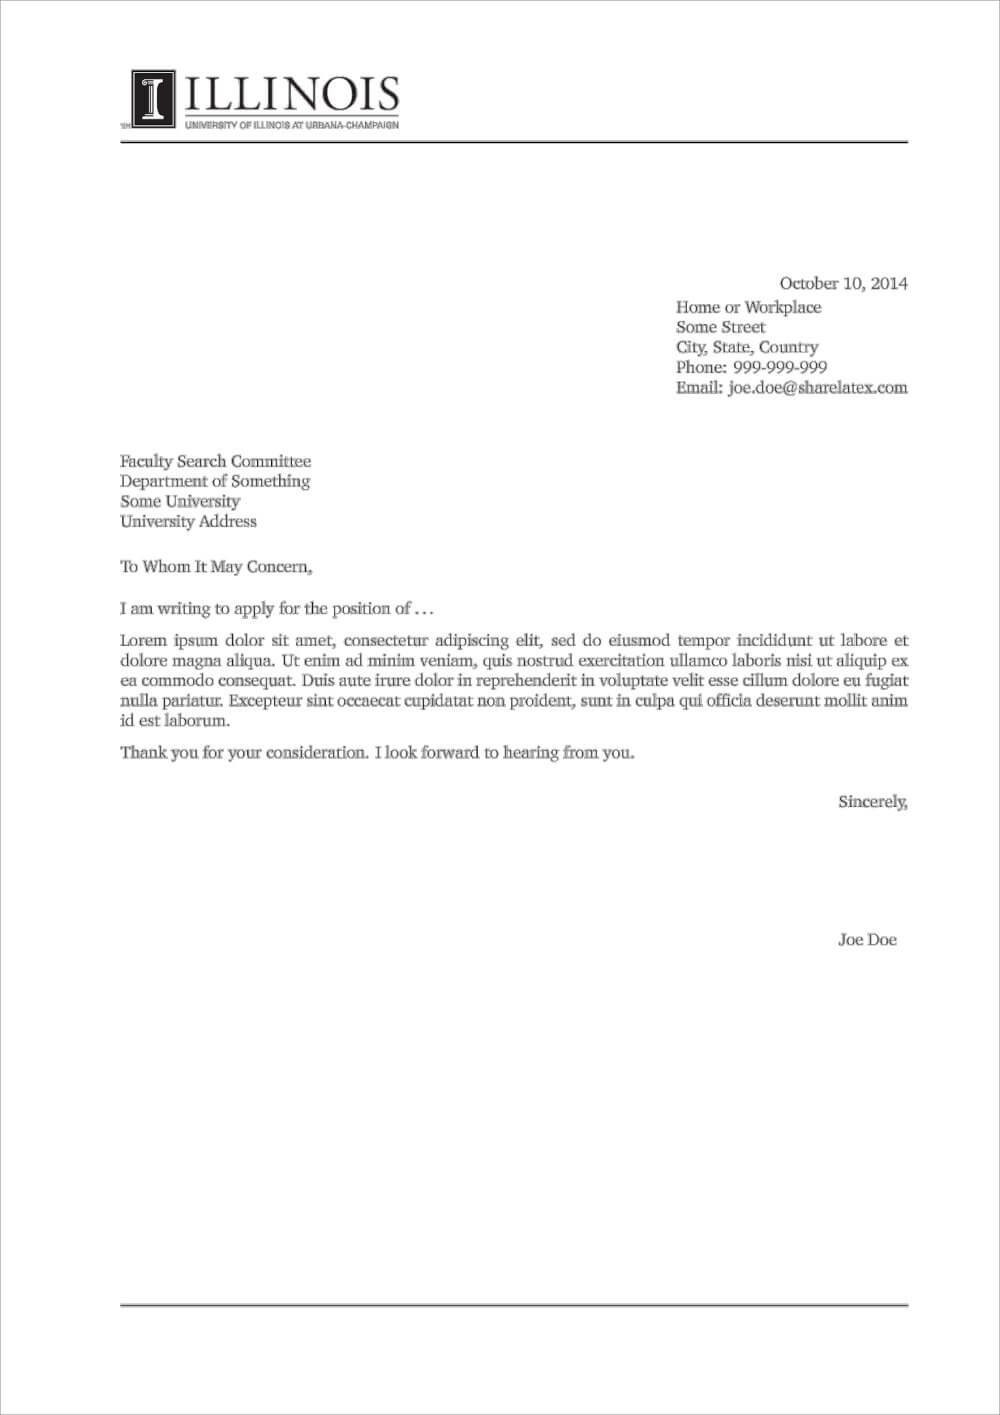 5 LaTeX Cover Letter Templates for Any Job